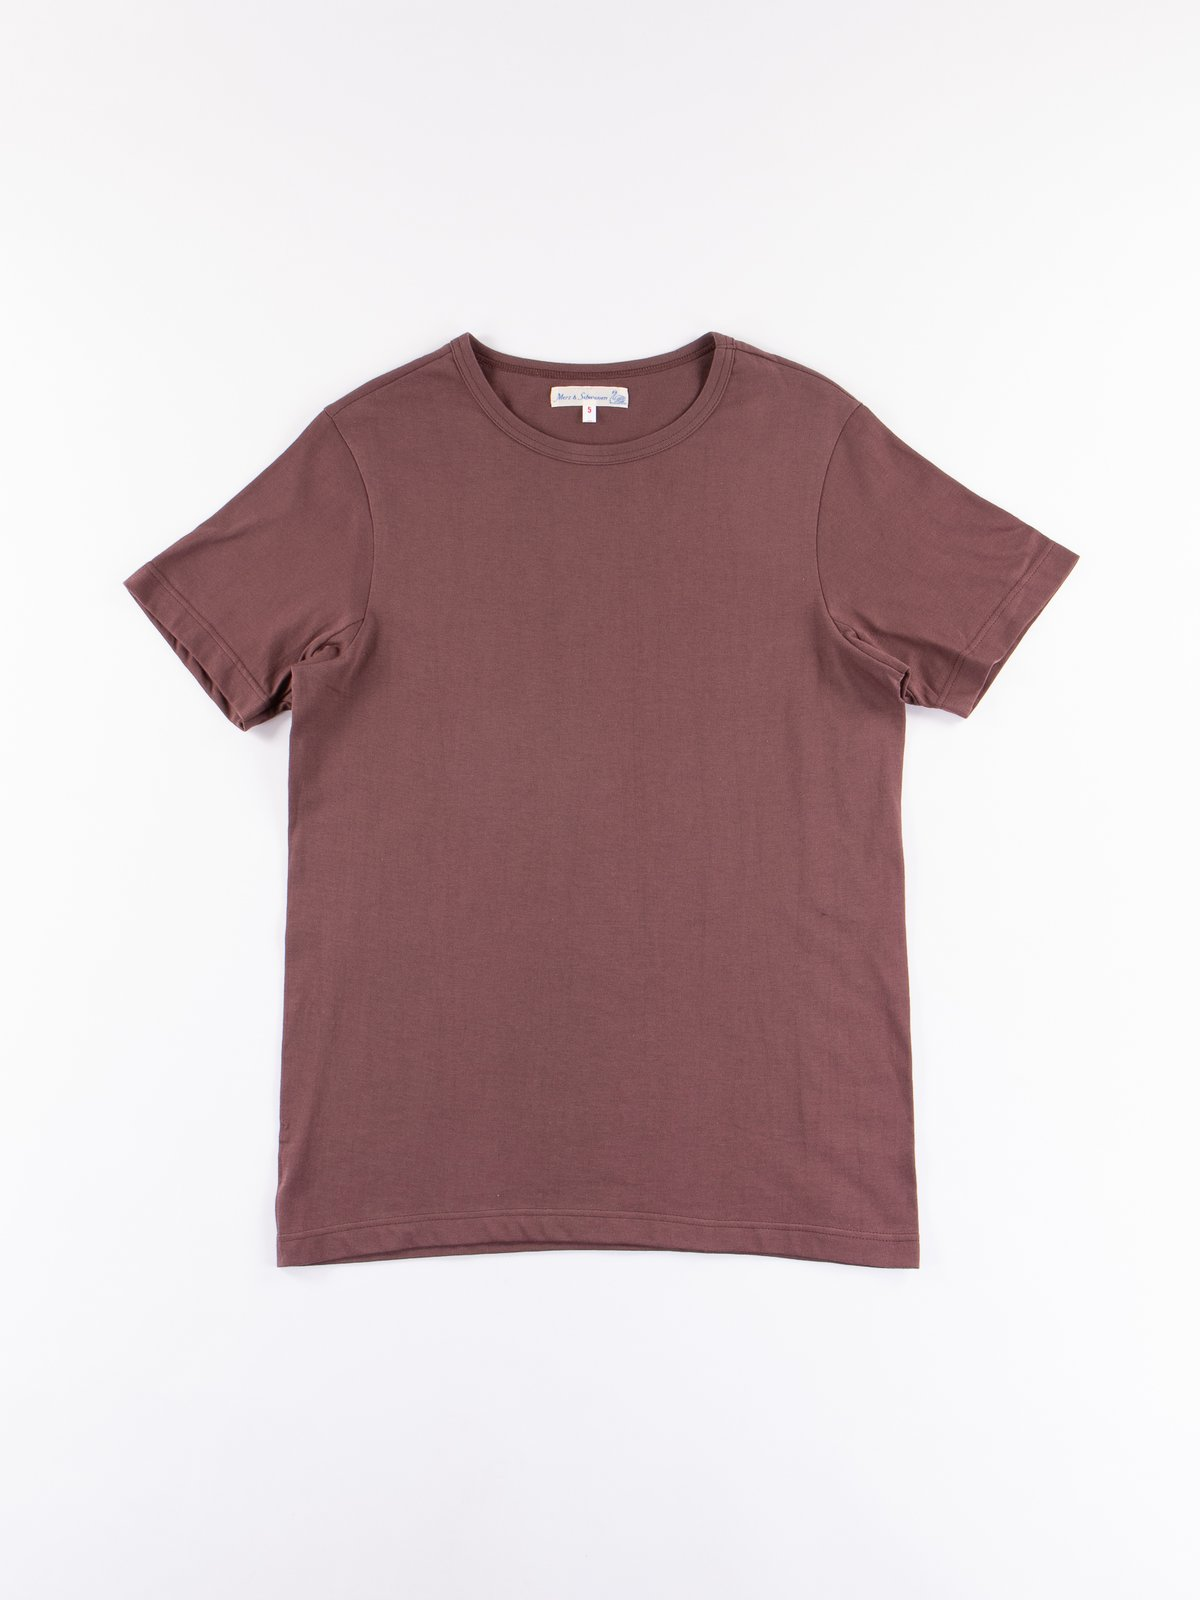 Red Oak 1950s Organic Crew Neck Tee - Image 1